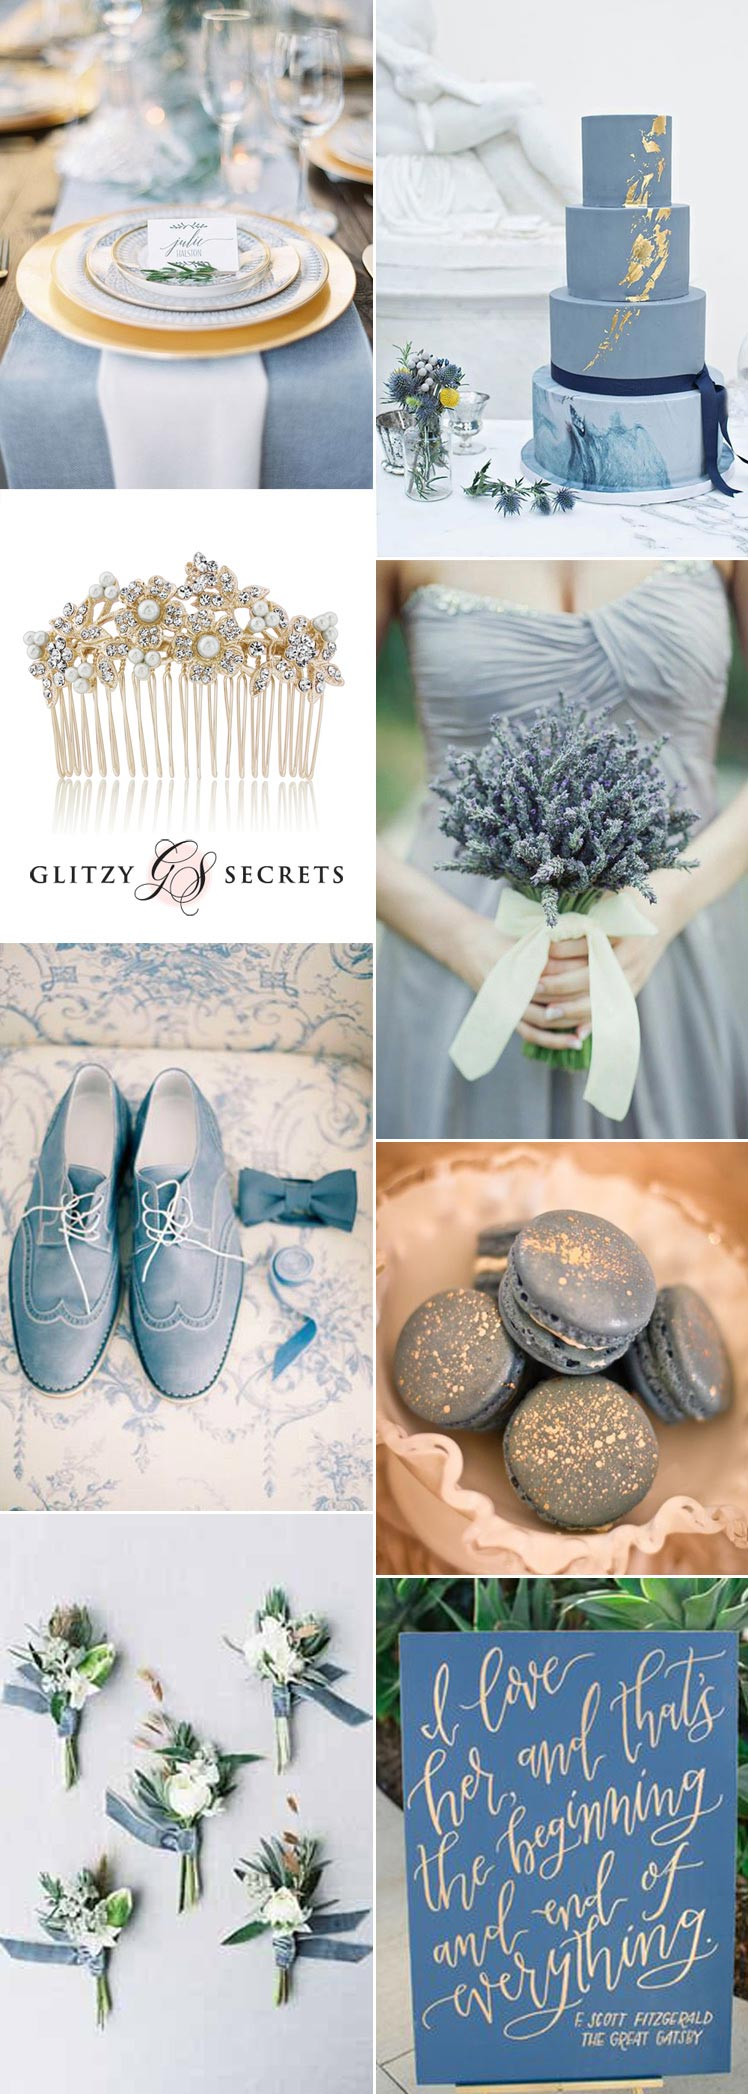 fabulous dusky blue and antique gold wedding inspiration